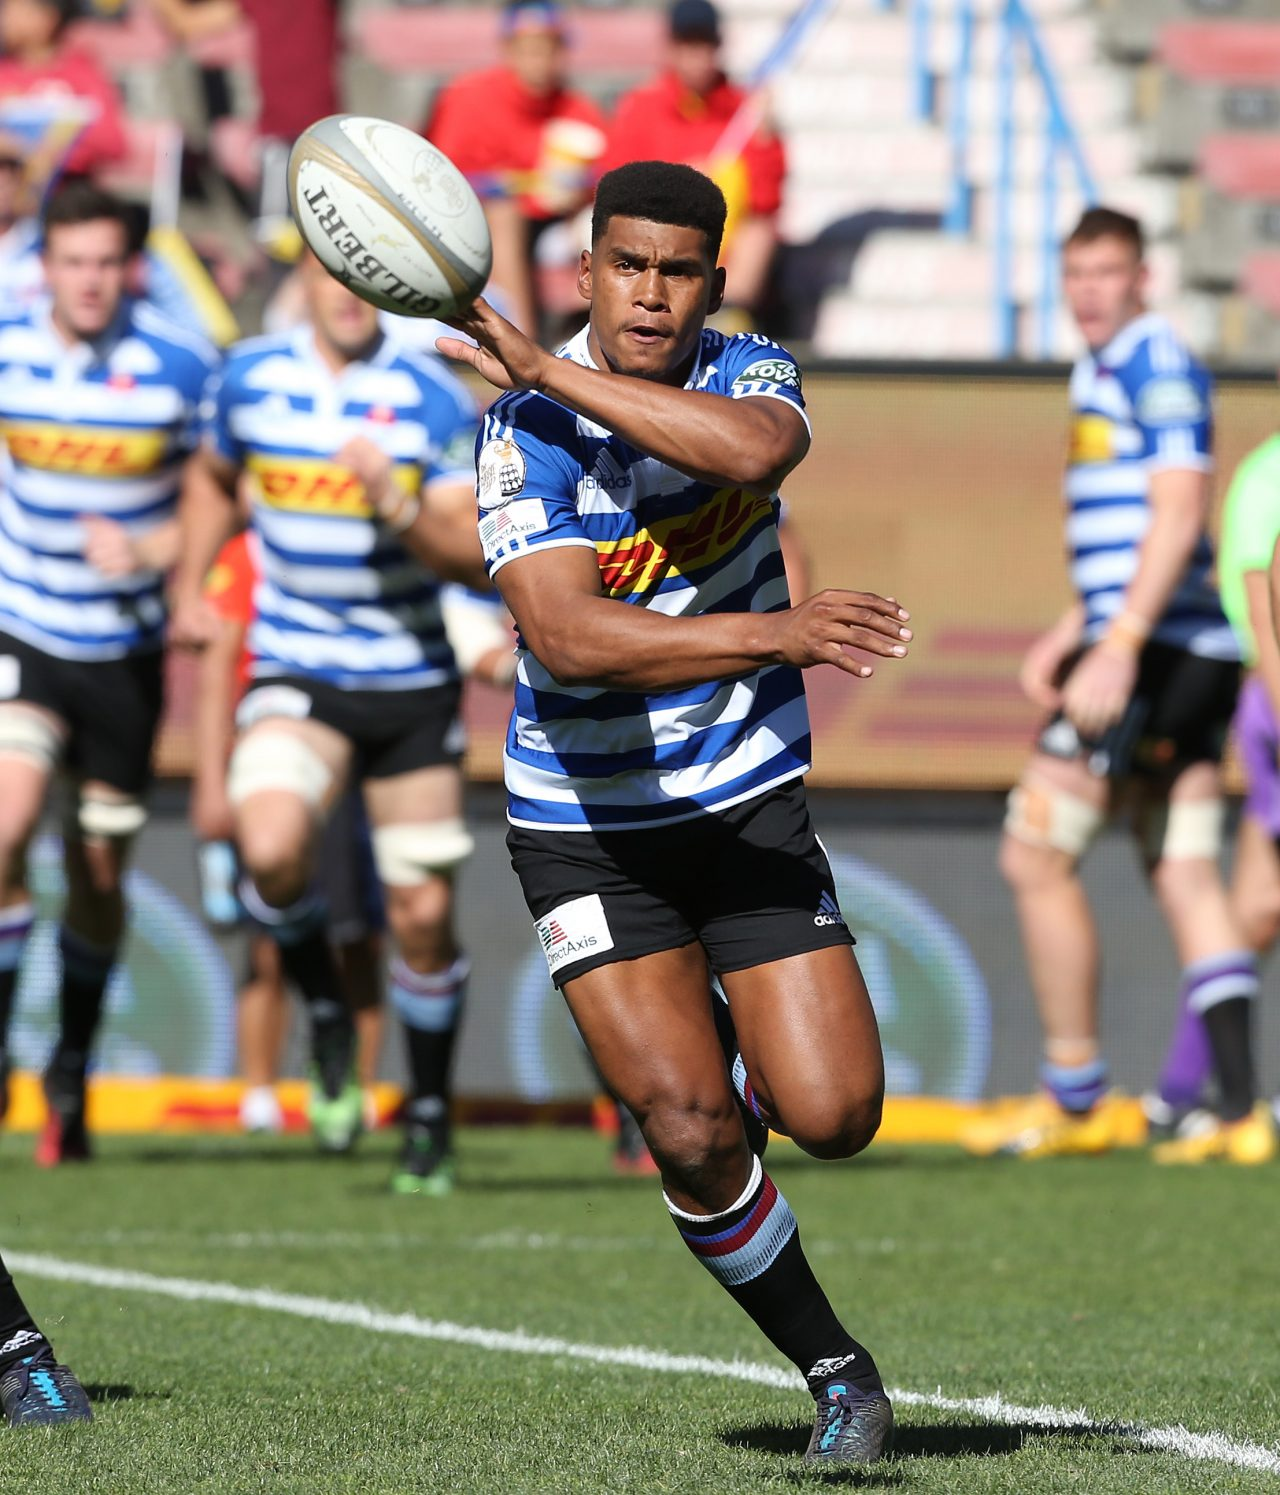 dca3f2efe7c CAPE TOWN, SOUTH AFRICA – AUGUST 26: Damian Willemse of Western Province  during the Currie Cup match between DHL Western Province and Cell C Sharks  at DHL ...